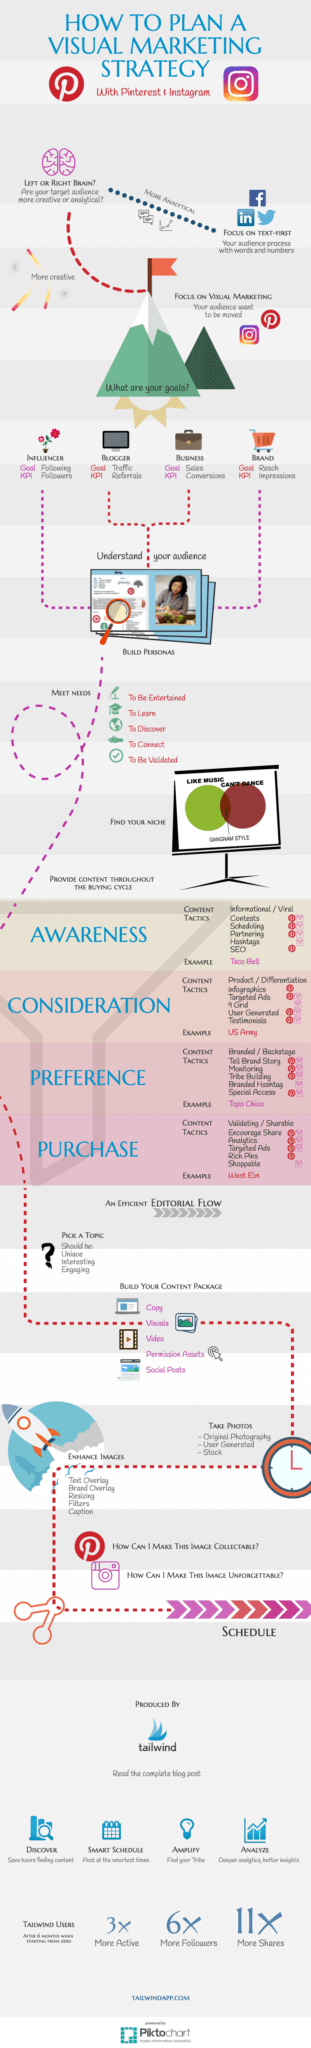 How to Plan a Pinterest and Instagram Visual Marketing Strategy Infographic